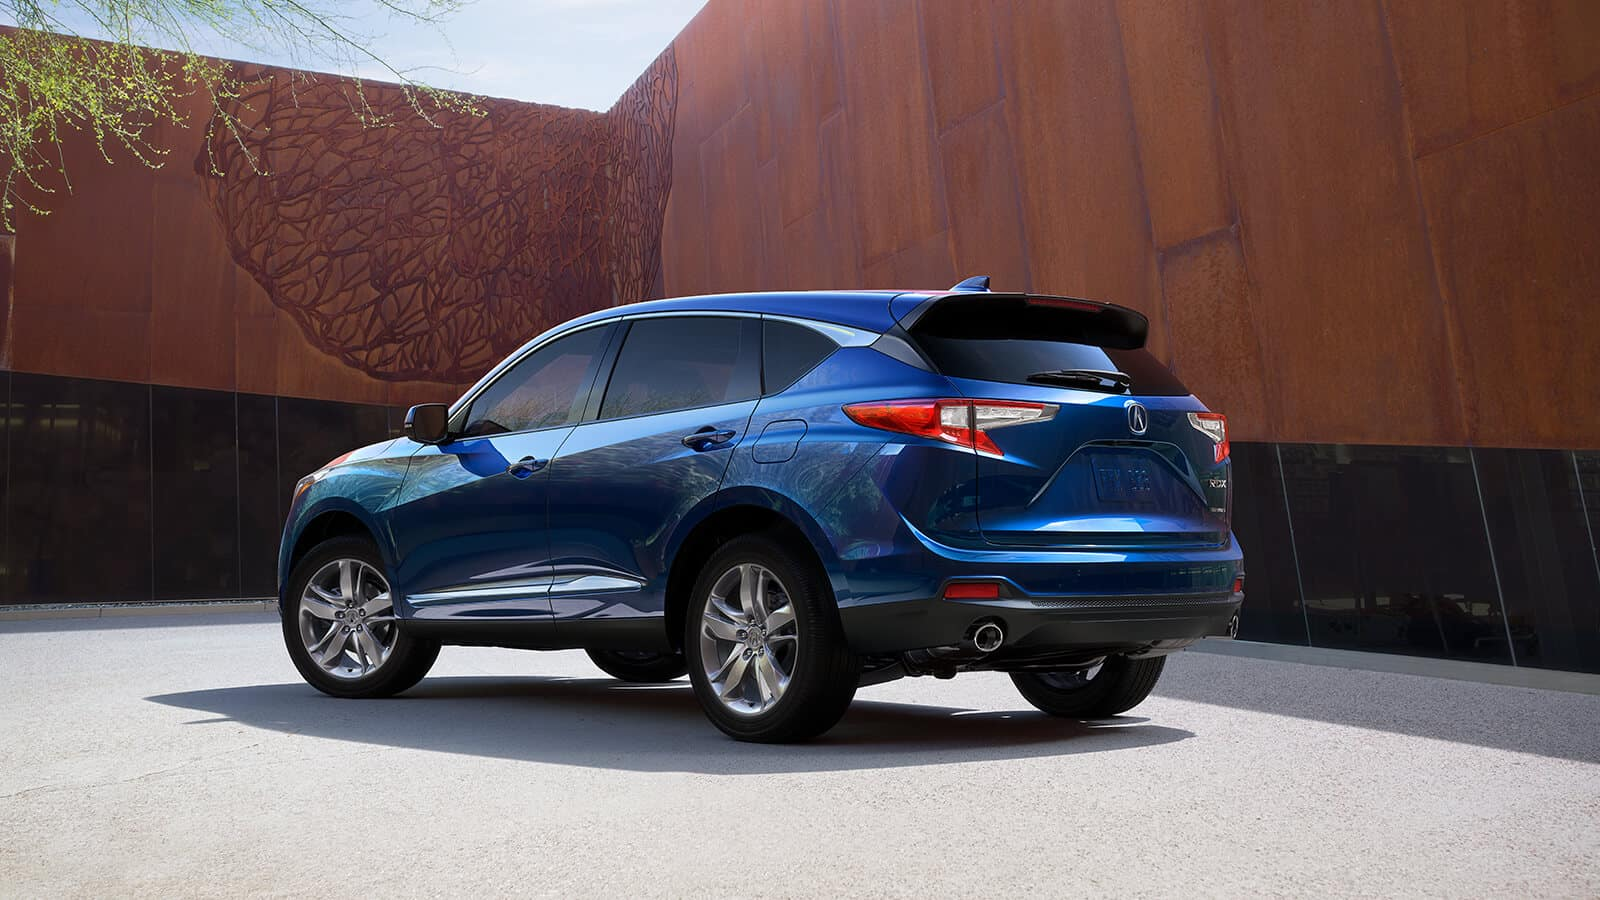 2020 Acura RDX Exterior Rear Angle Driver Side